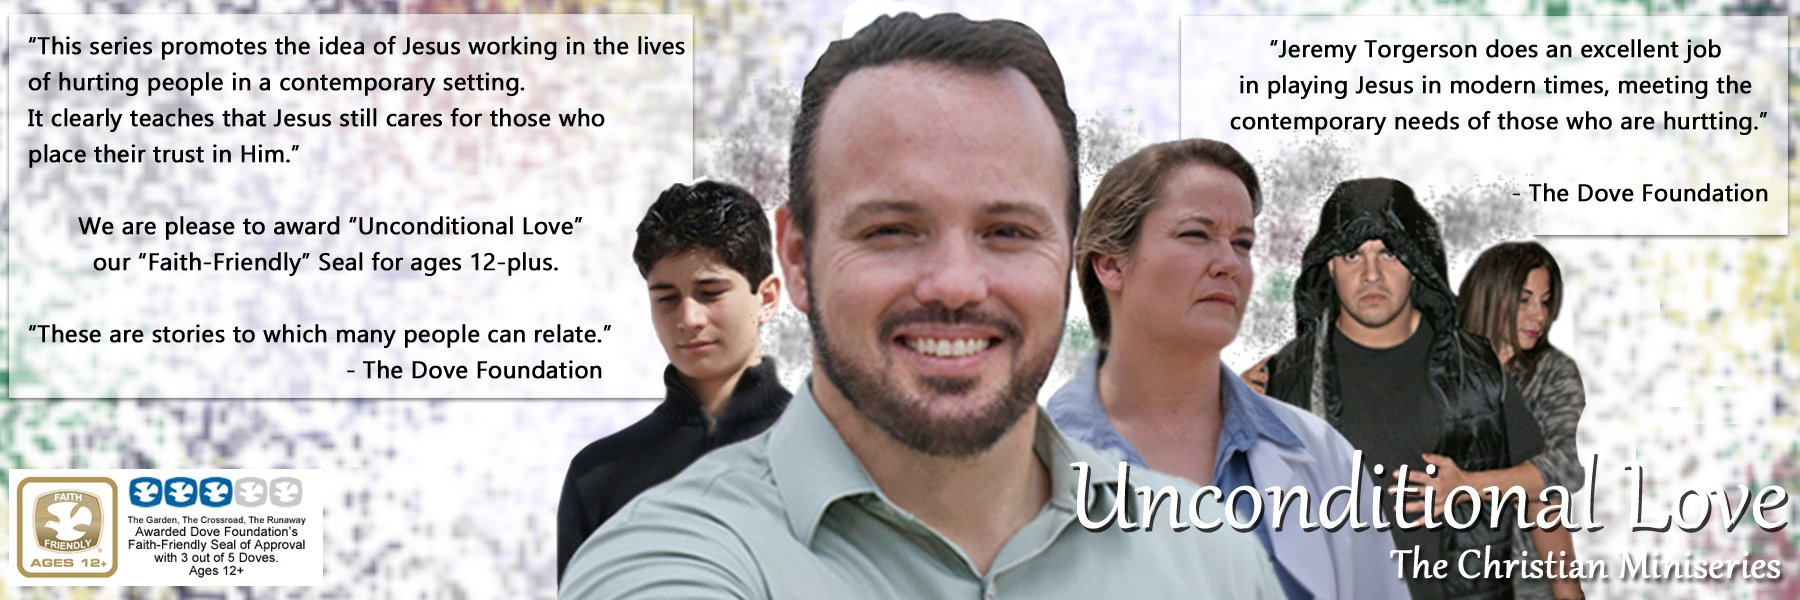 Unconditional Love Christian Miniseries